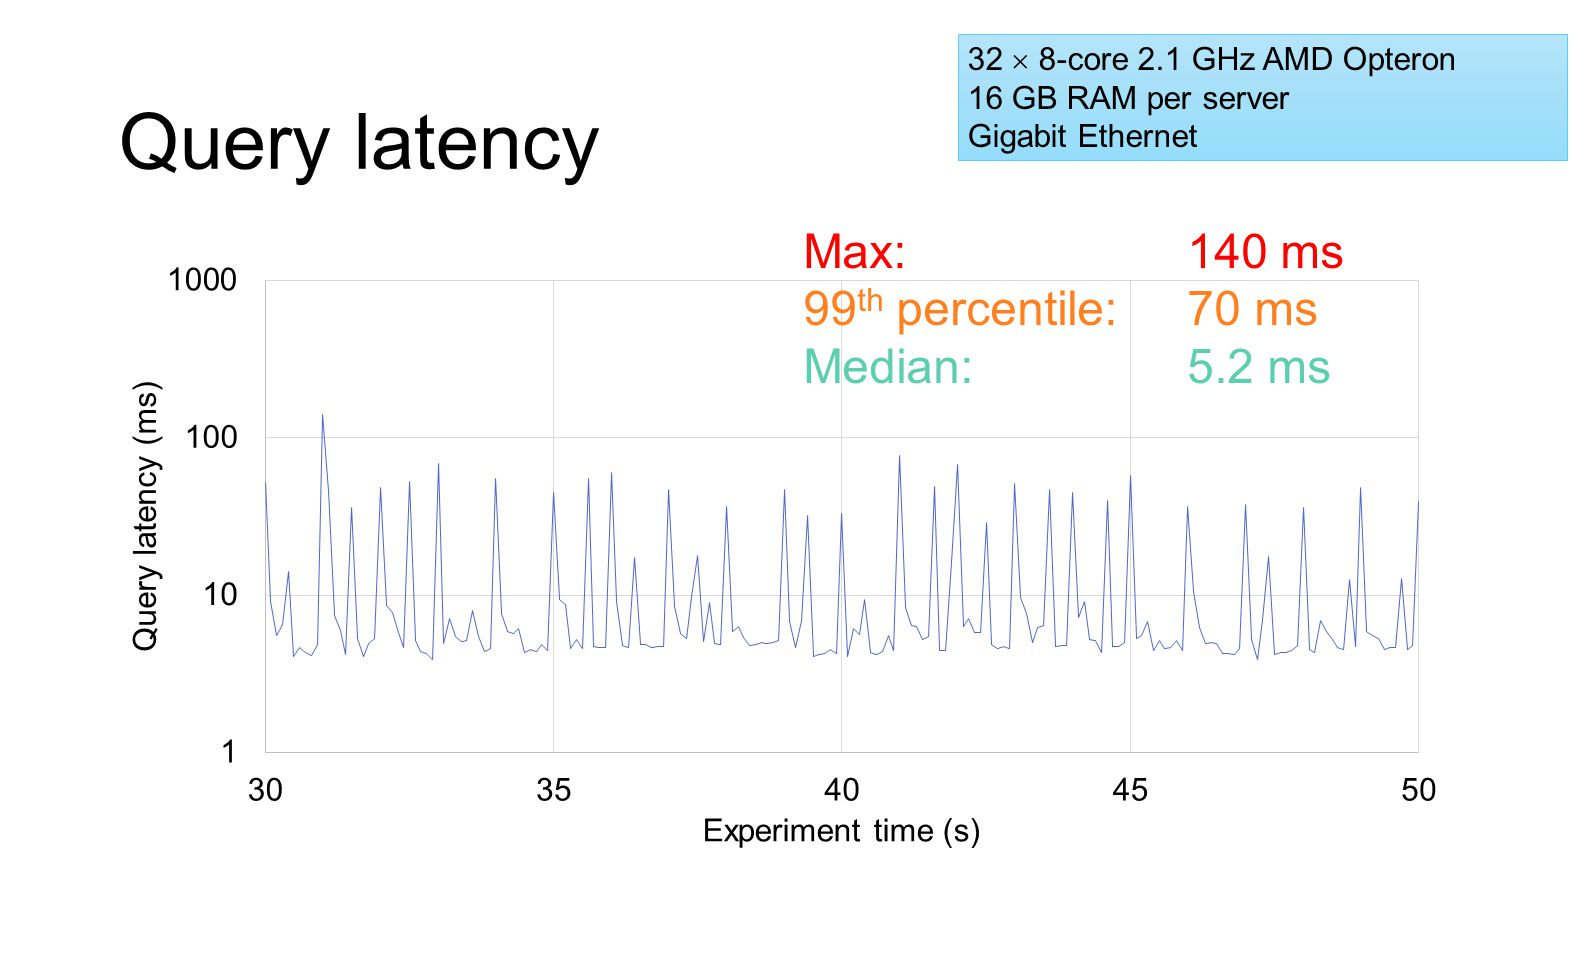 Query latency Max: 140 ms 99th percentile: 70 ms Median: 5.2 ms